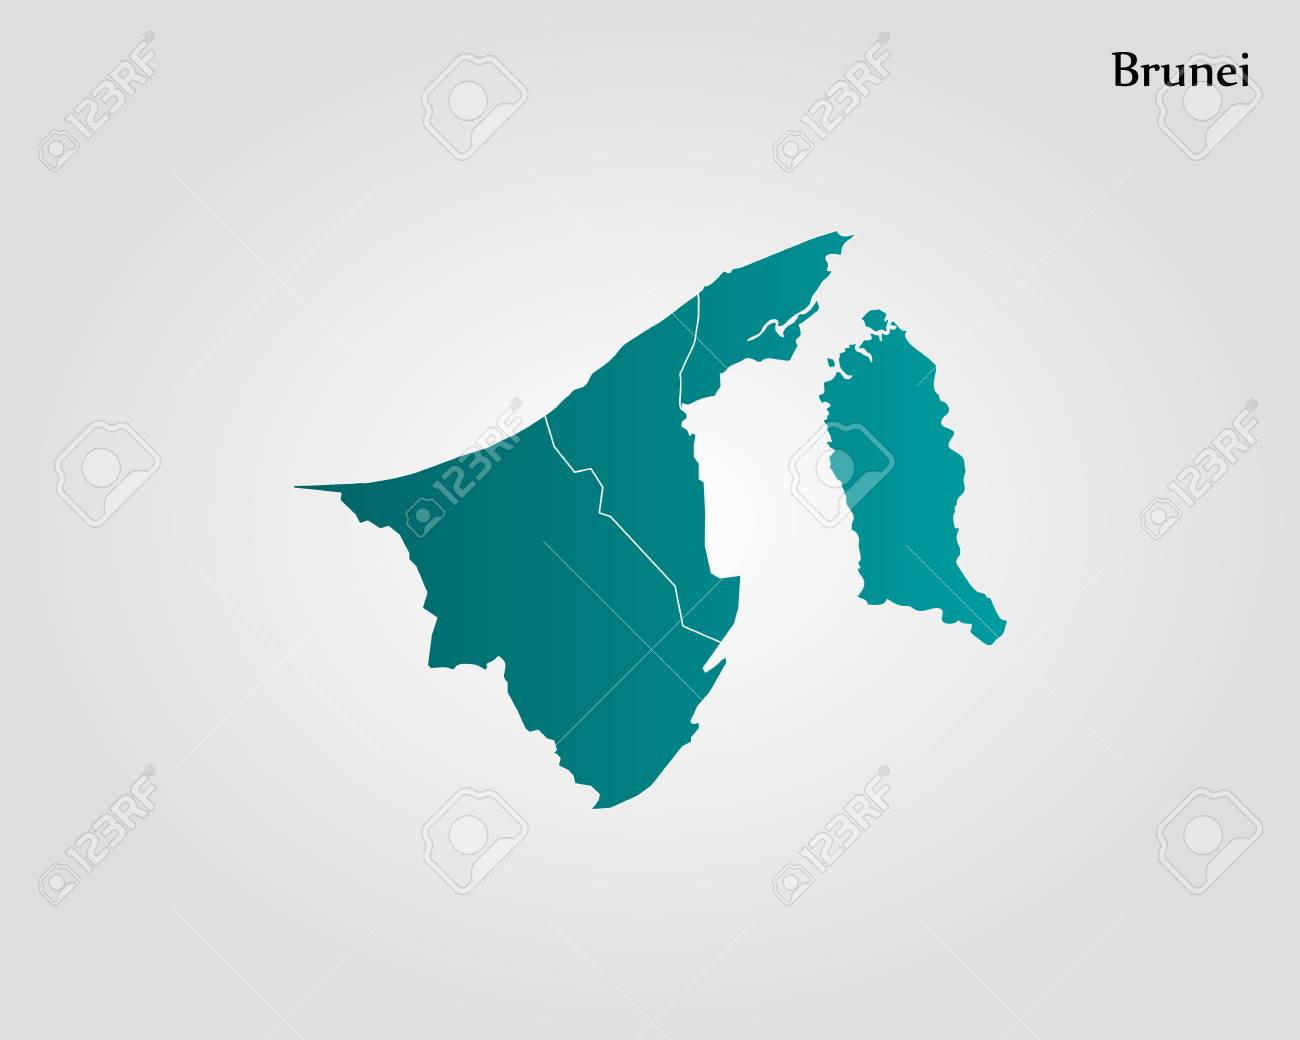 Map Of Brunei Vector Illustration World Map Royalty Free Cliparts